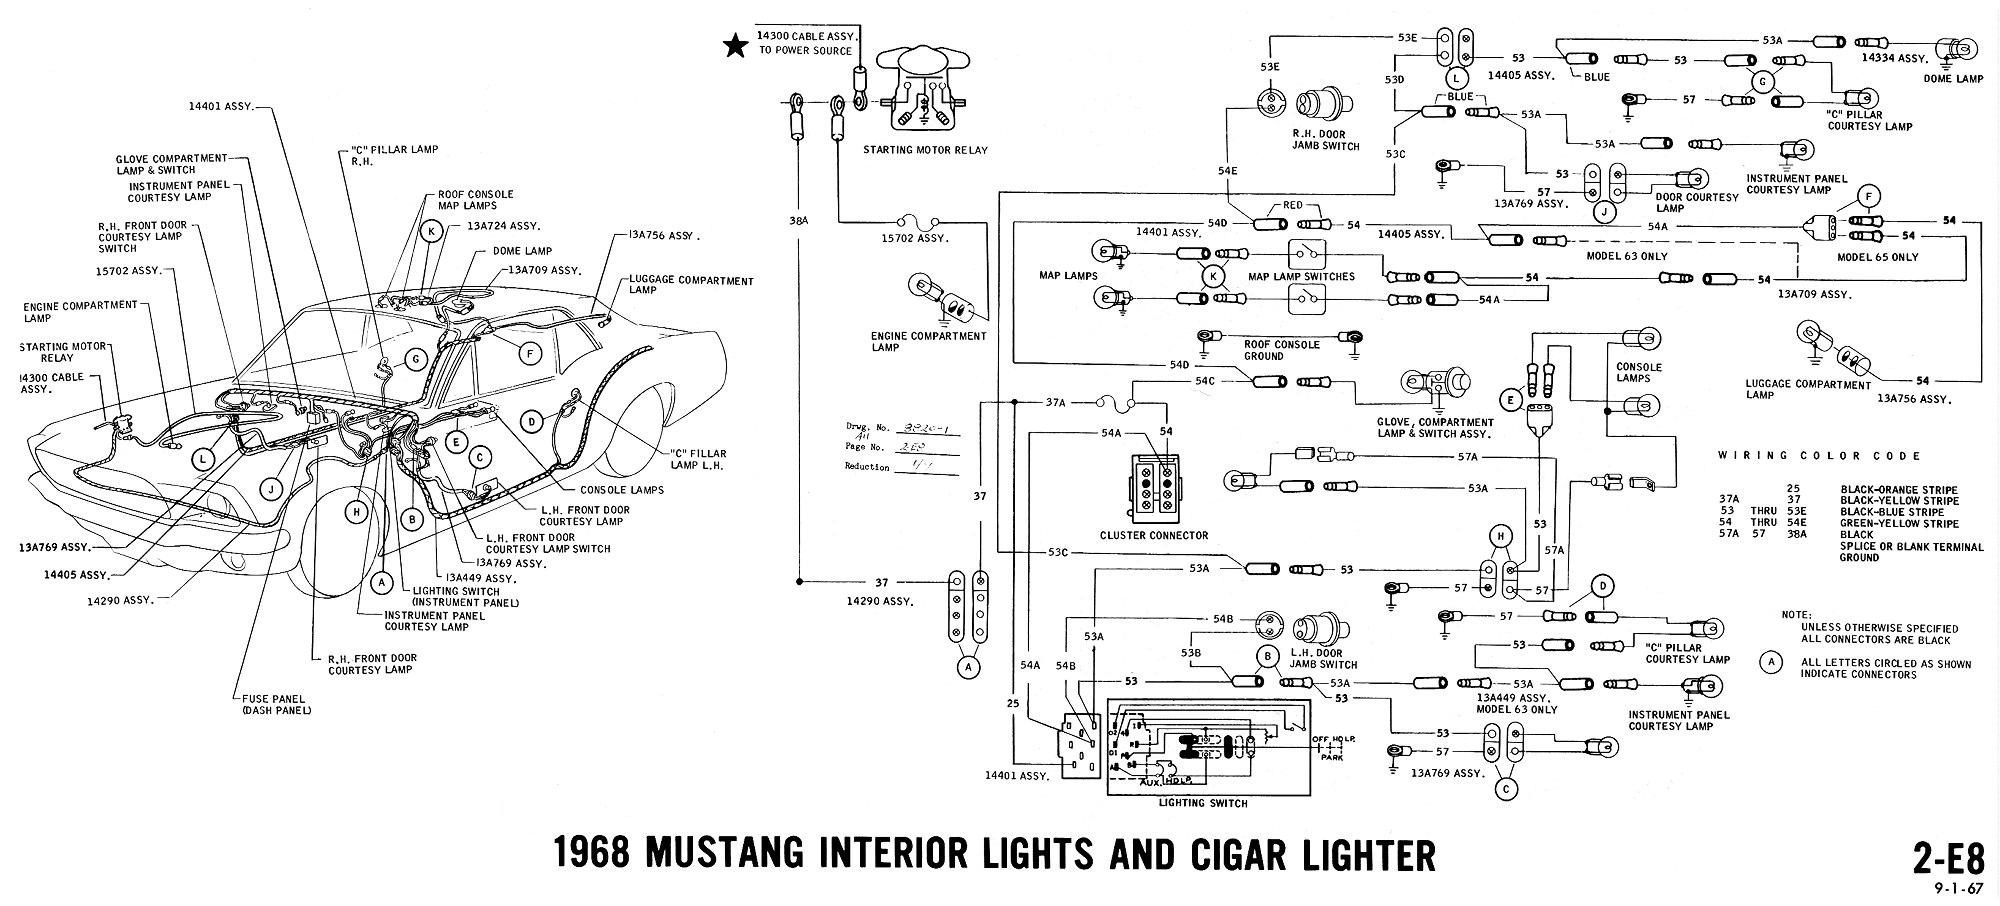 1968 Mustang Wiring Diagrams on 1988 ford alternator wiring diagram